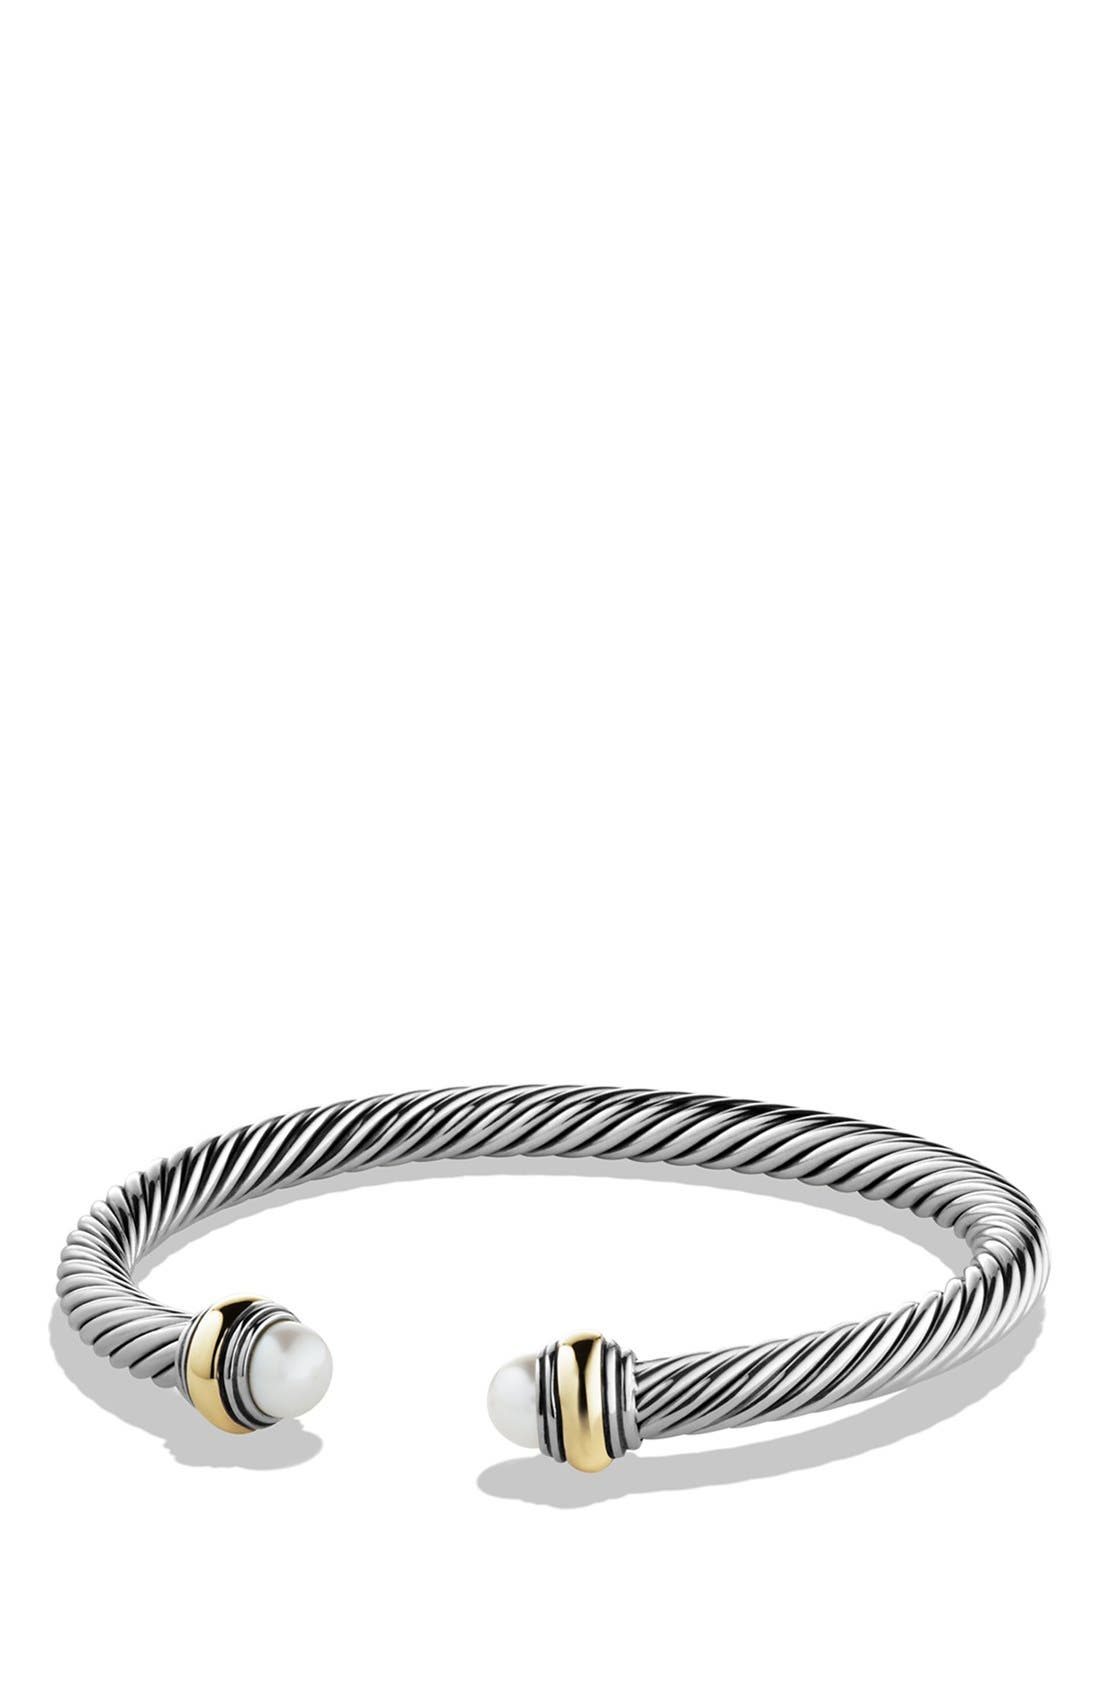 Cable Classics Bracelet with Semiprecious Stones & 14K Gold Accent, 5mm,                         Main,                         color, Pearl